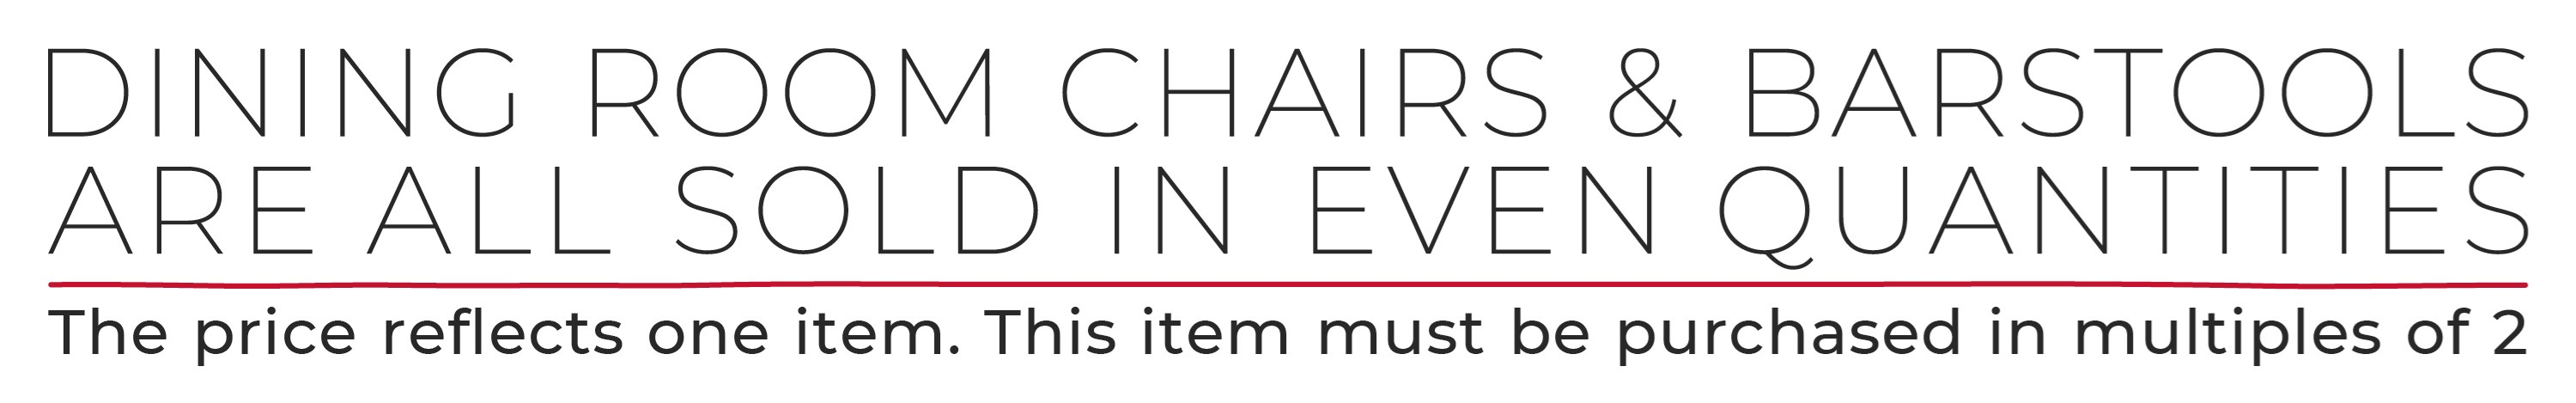 Dining Room Chairs & Barstools  Are all sold in even quantities